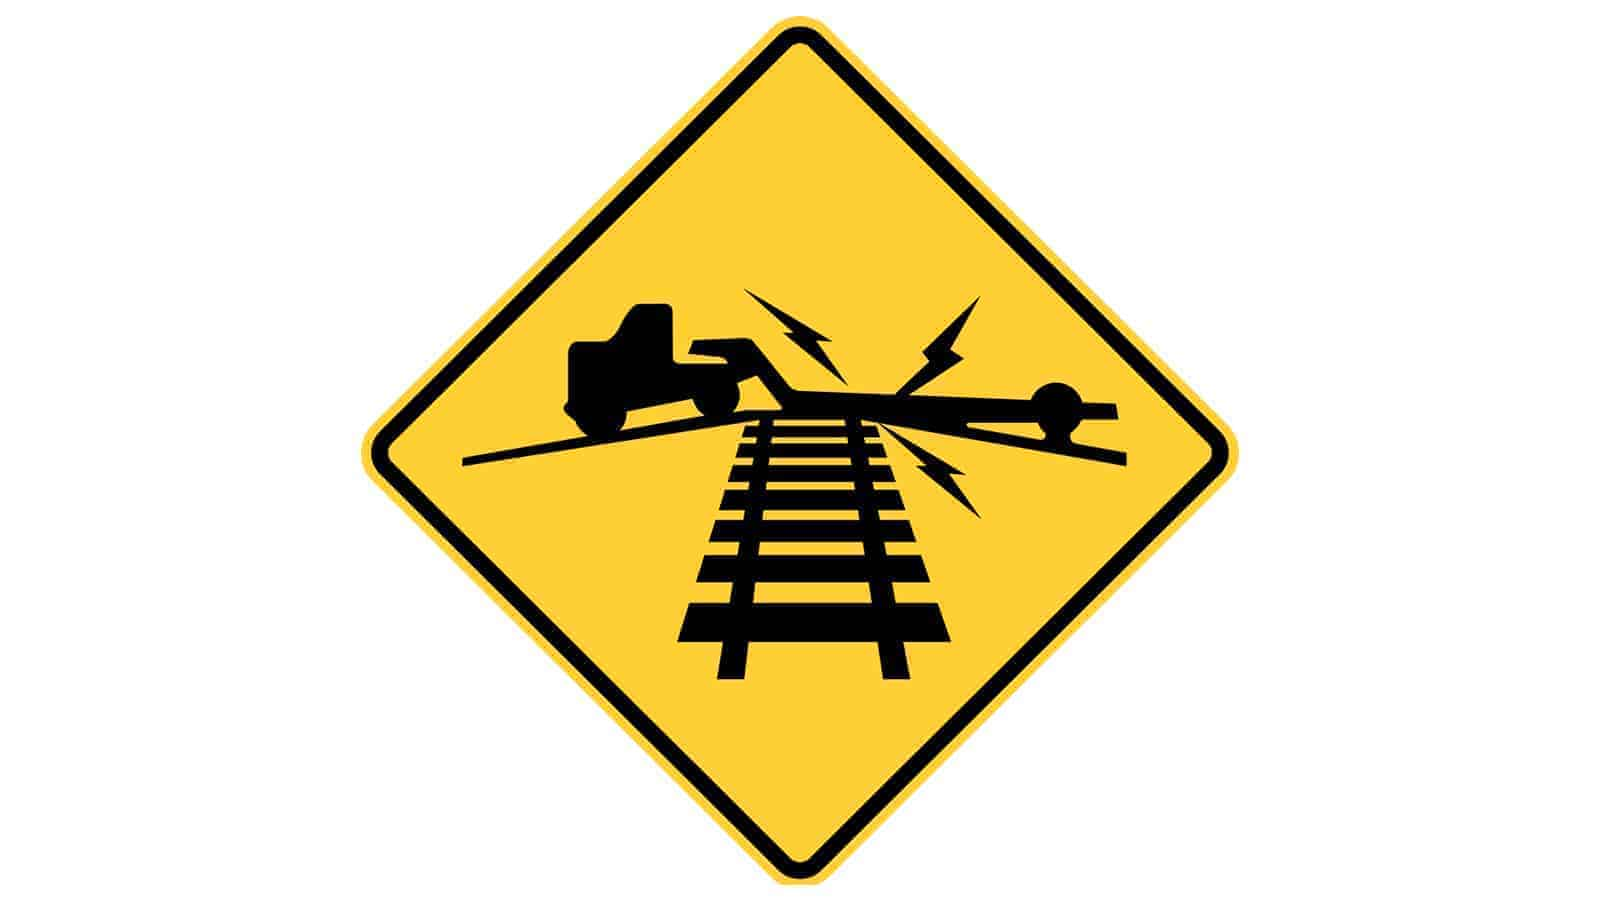 Warning sign Low Ground Clearance Railroad Crossing